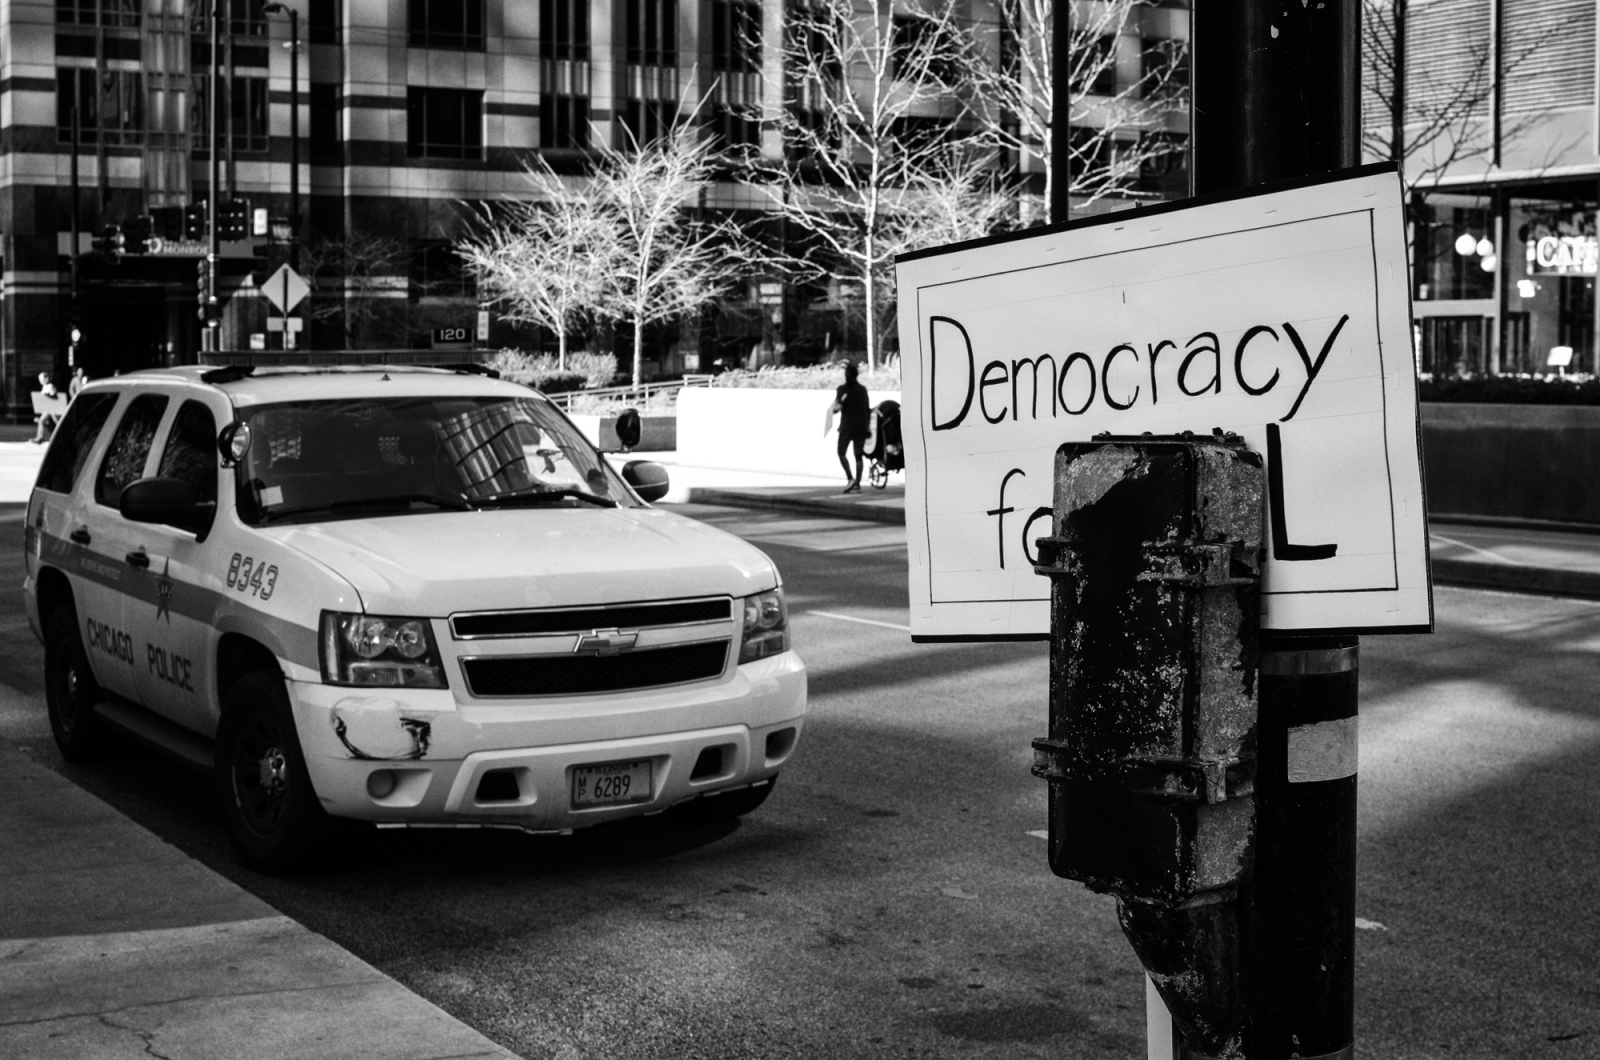 Democracy for All, Adams and Riverside Plaza, Chicago 2016